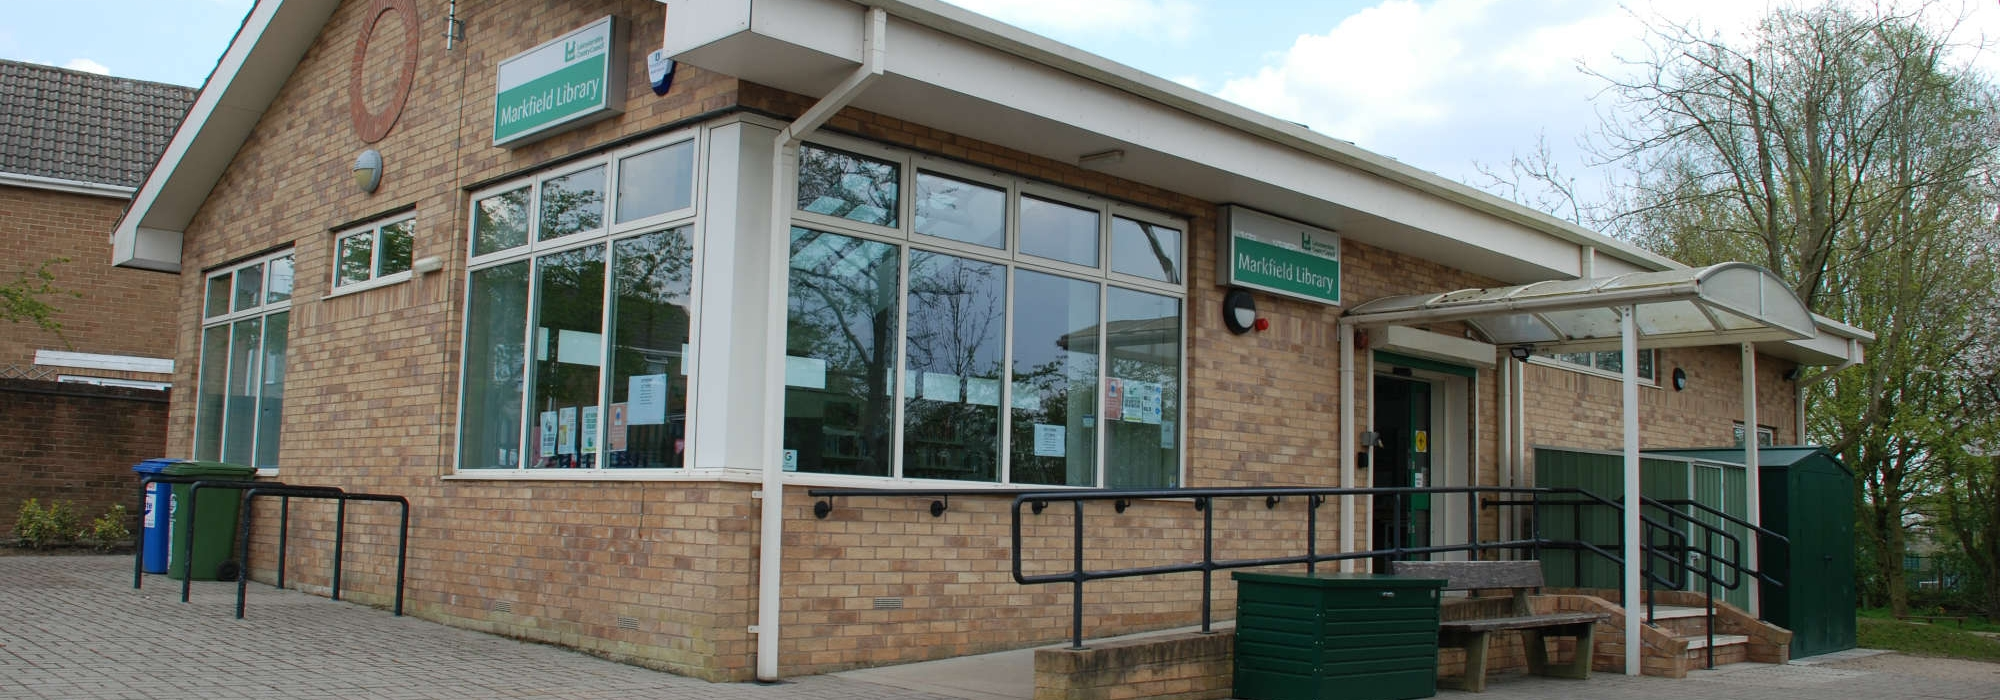 Markfield Library, front of library shown in image